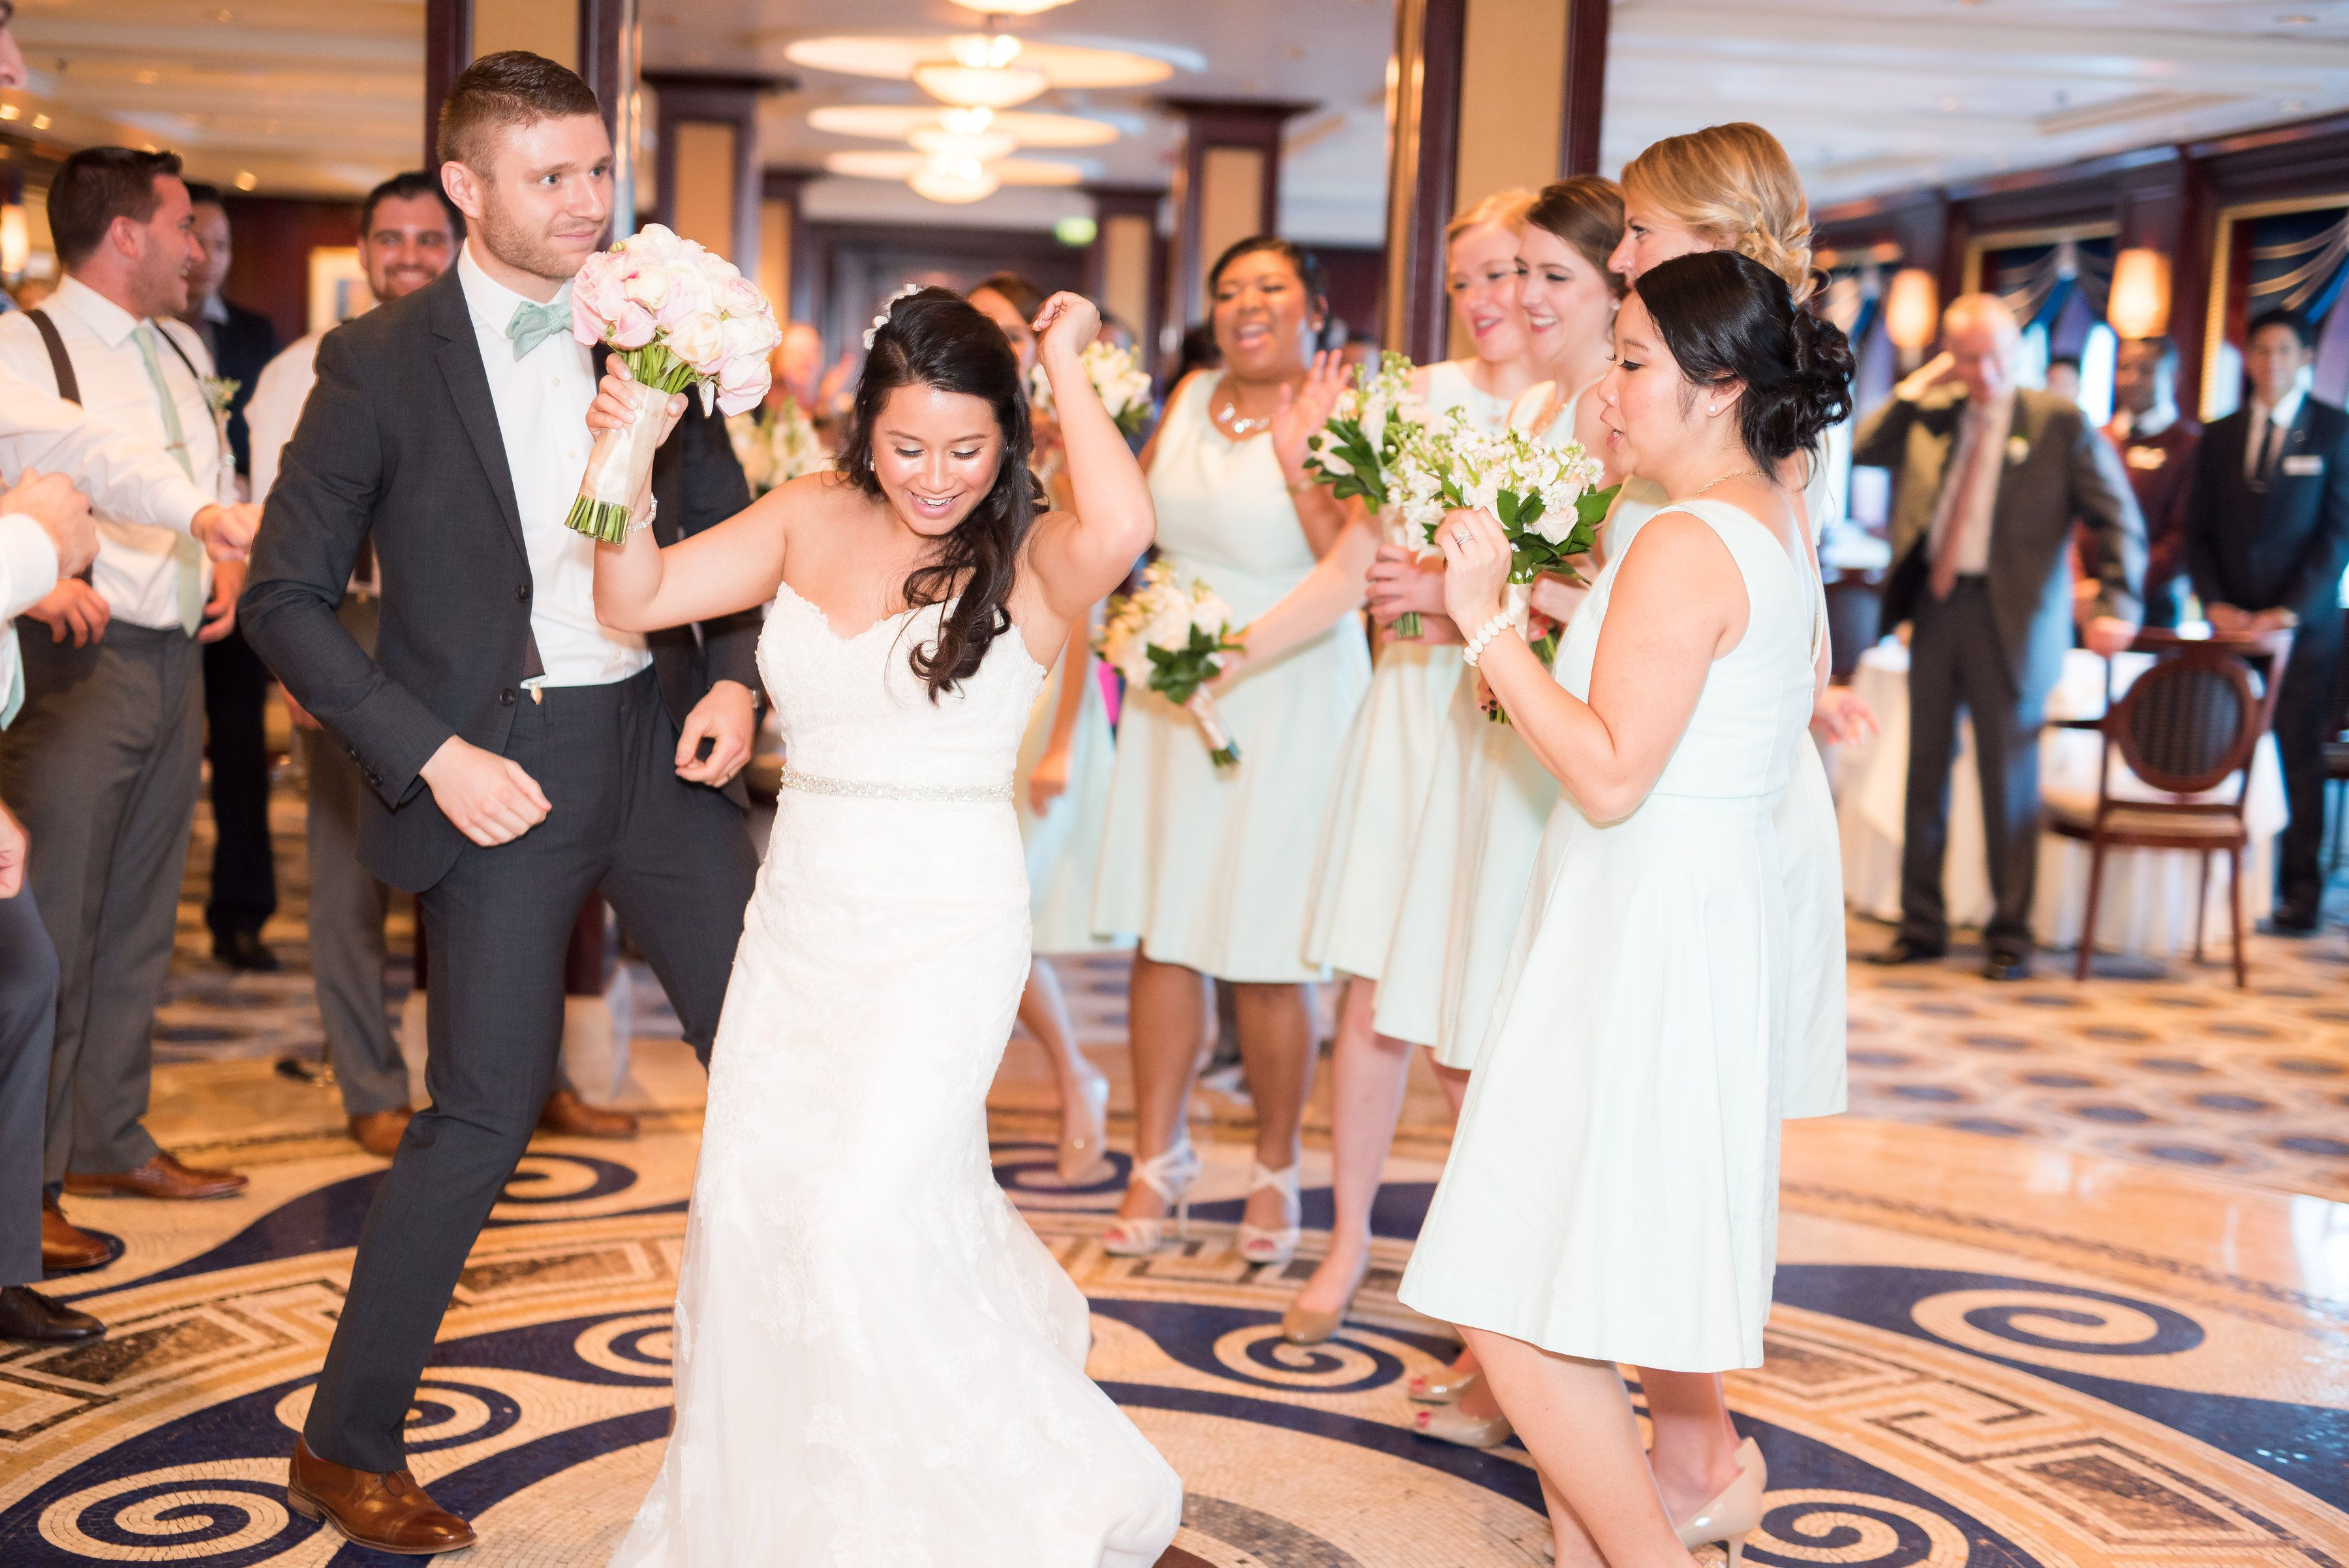 Not One Of Those Who Wants The Night To End The Perfect Perk About Cruiseshipweddings And Destinationweddin In 2020 Cruise Ship Wedding Wedding Destination Wedding